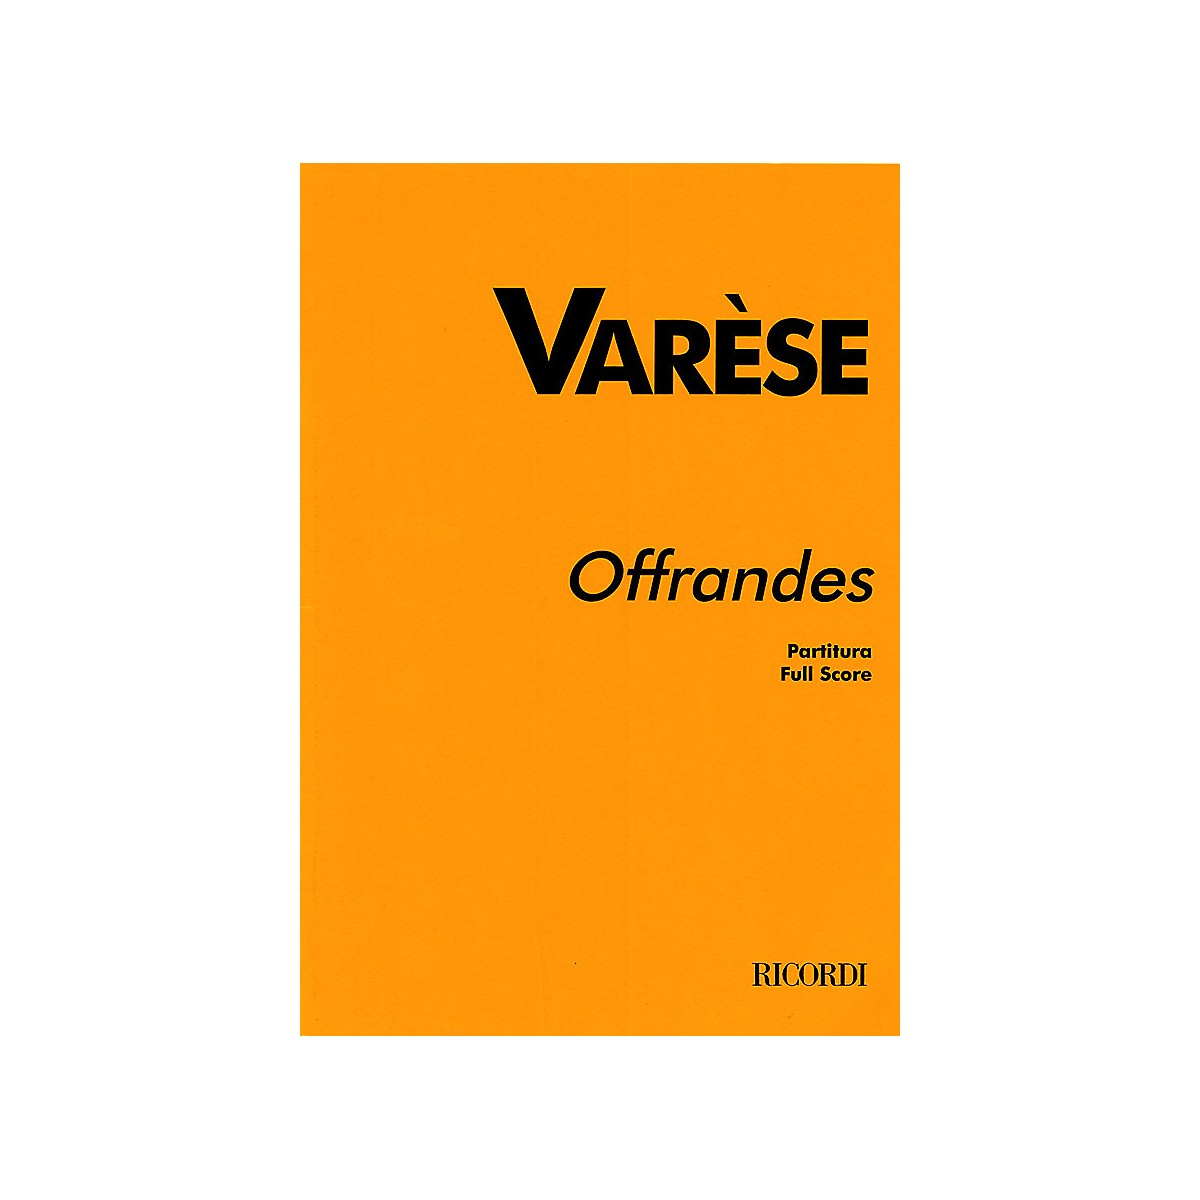 Ricordi Offrandes (Study Score) Study Score Series Composed by Edgard Varèse